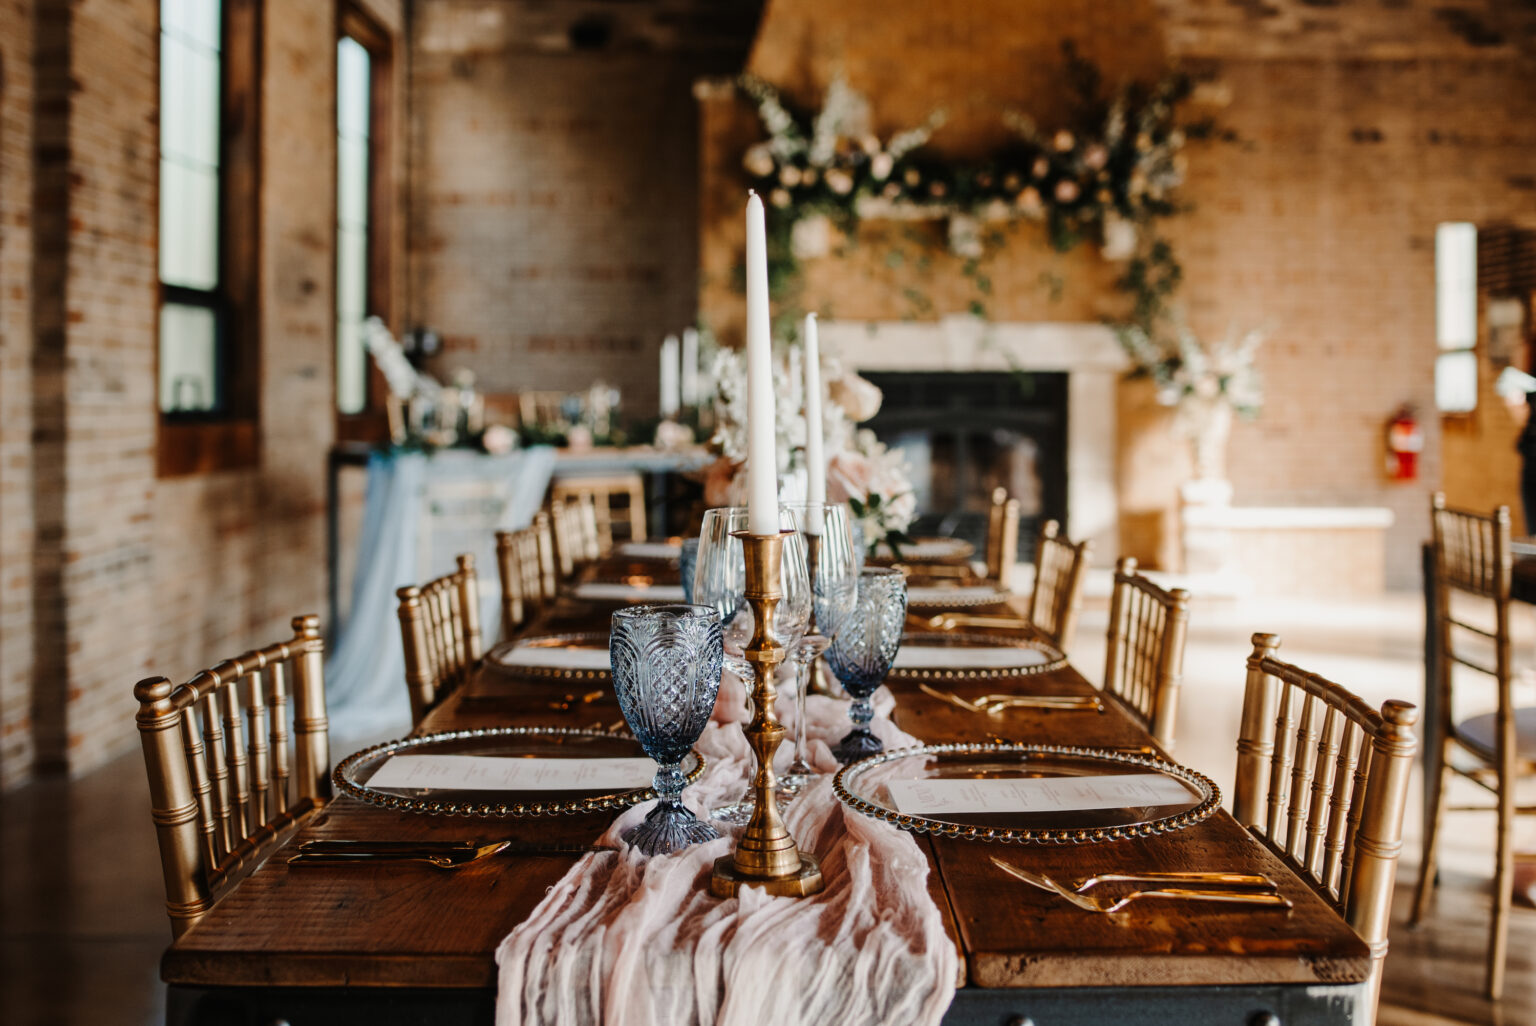 A long wooden table laid for a wedding.